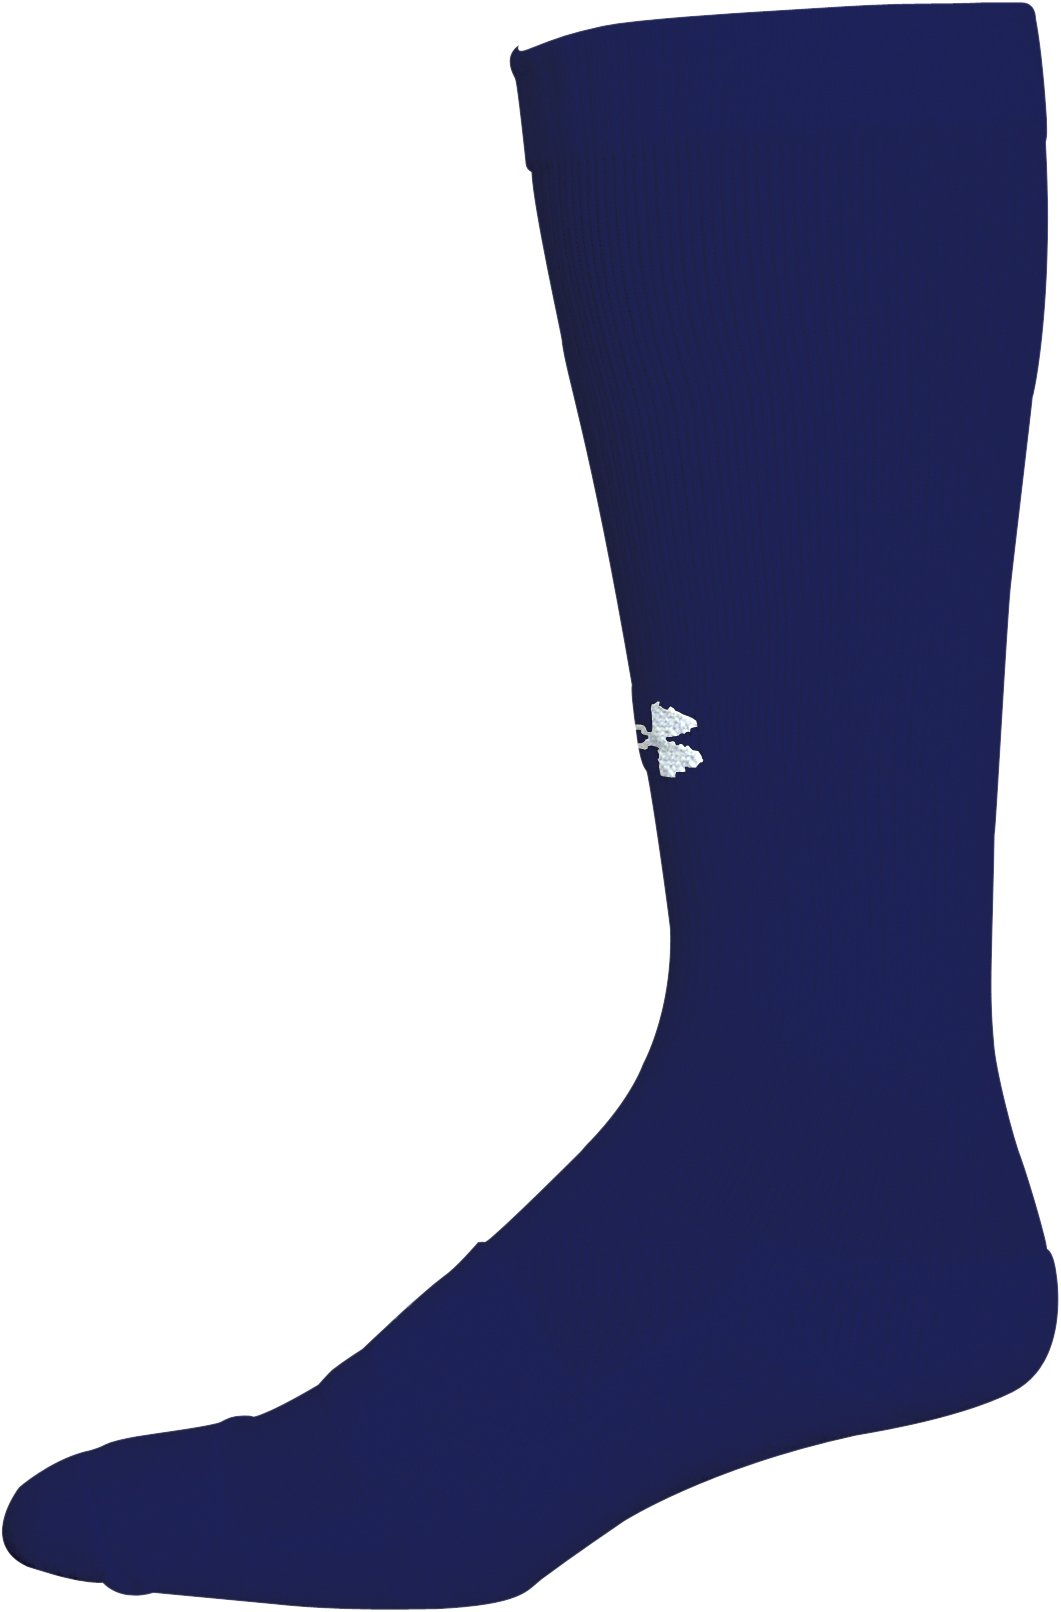 Youth AllSport Socks, Midnight Navy, zoomed image